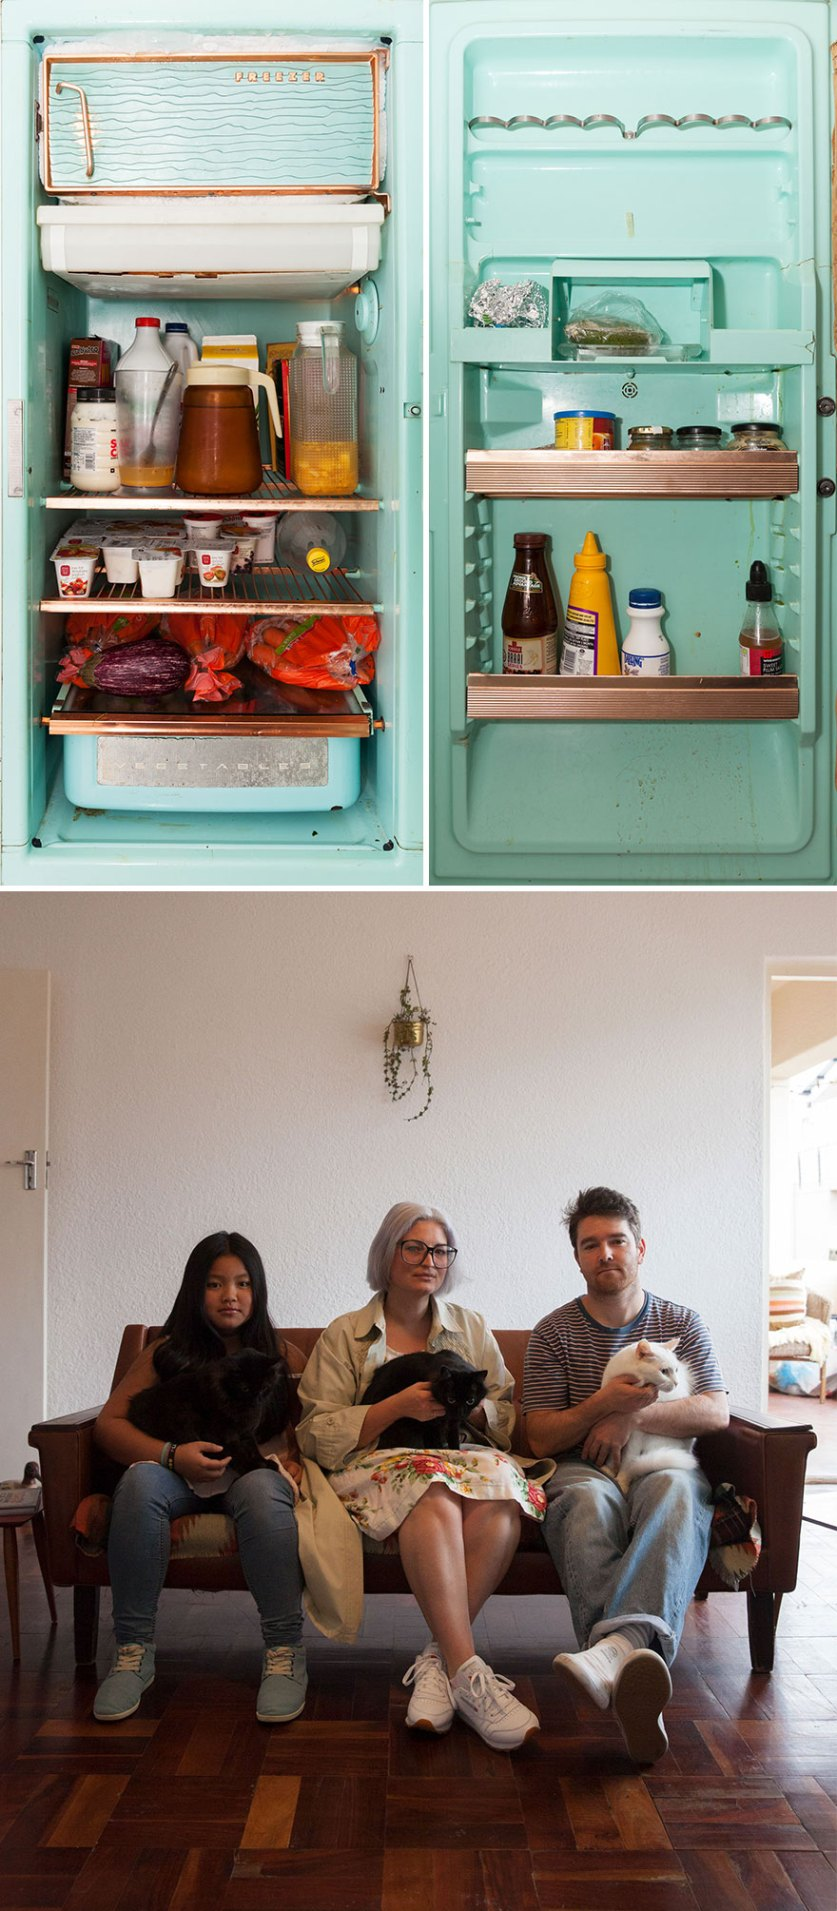 photographer compares 14 fridges and their owners around the world